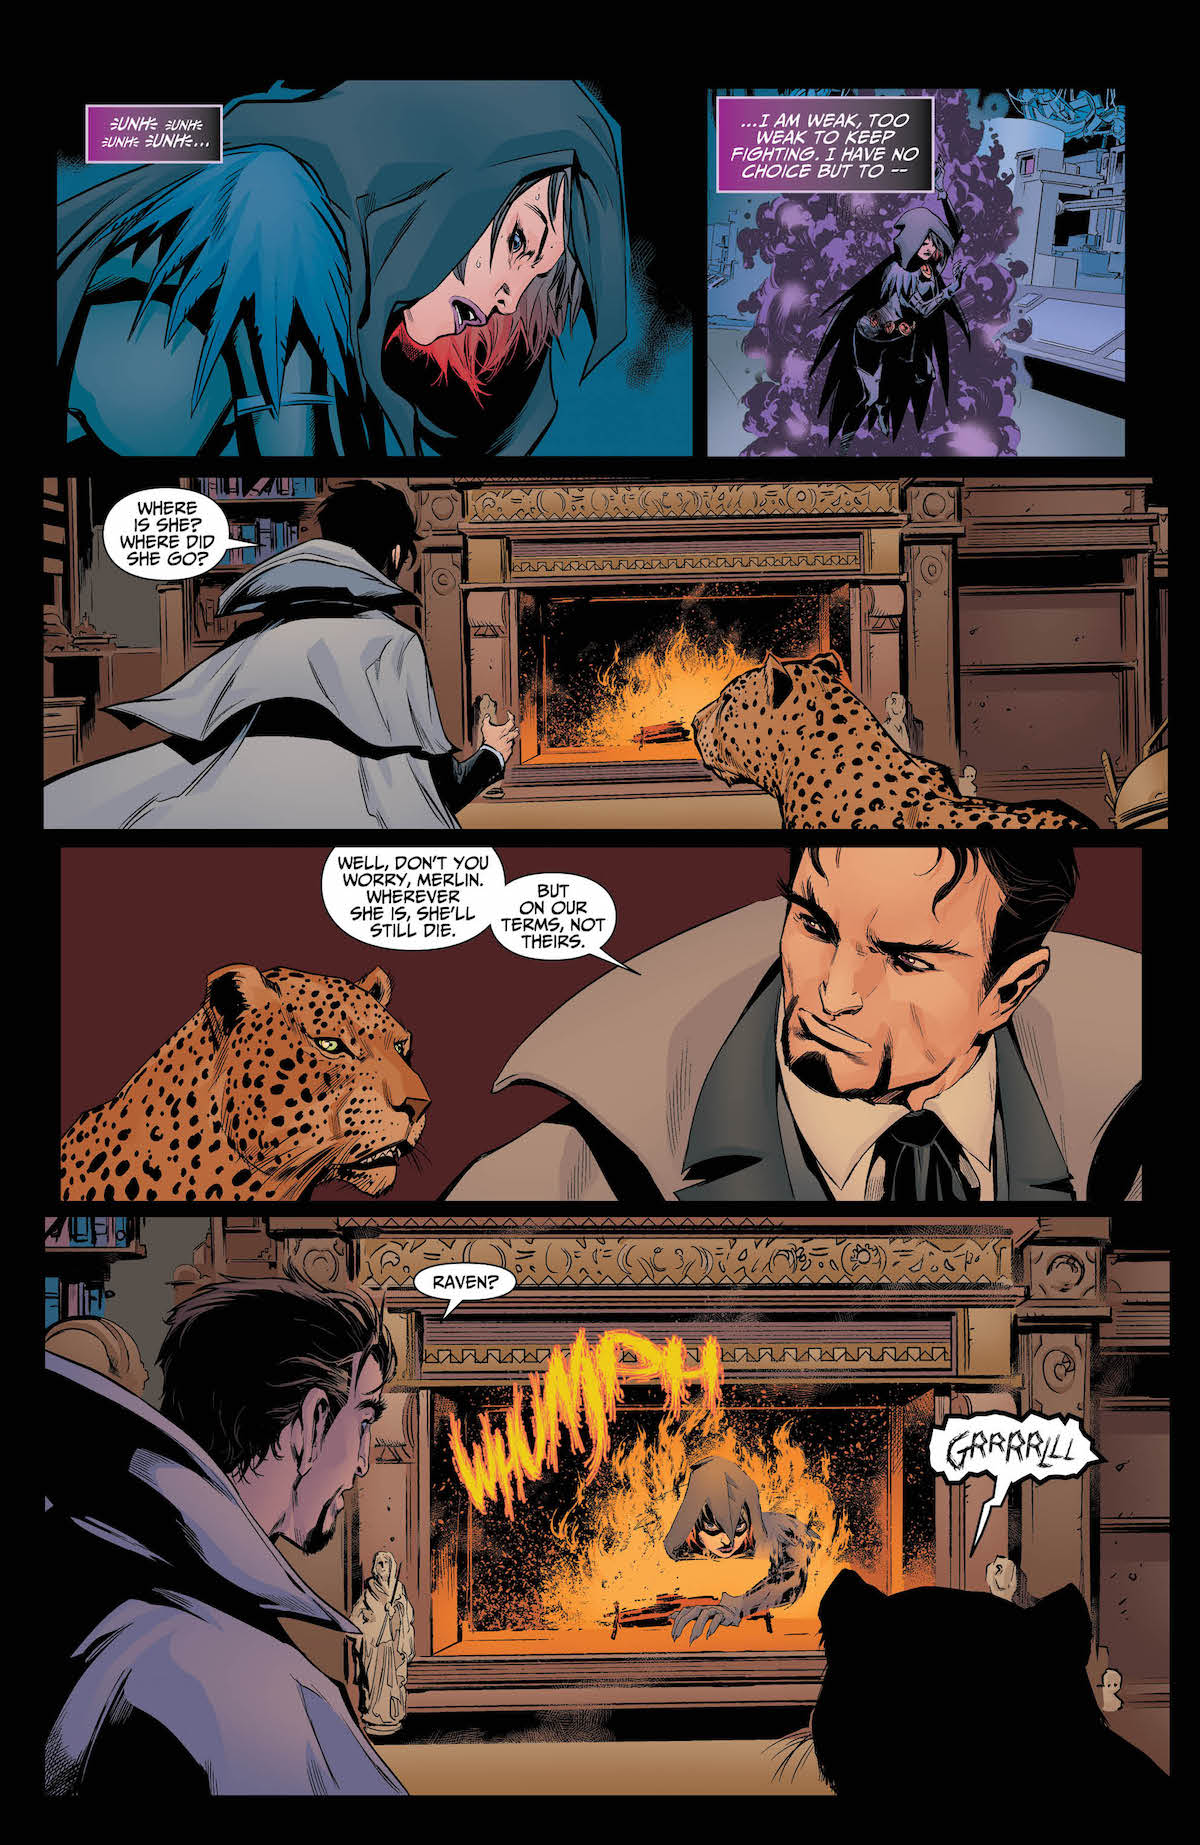 Raven Daughter of Darkness #3 page 5